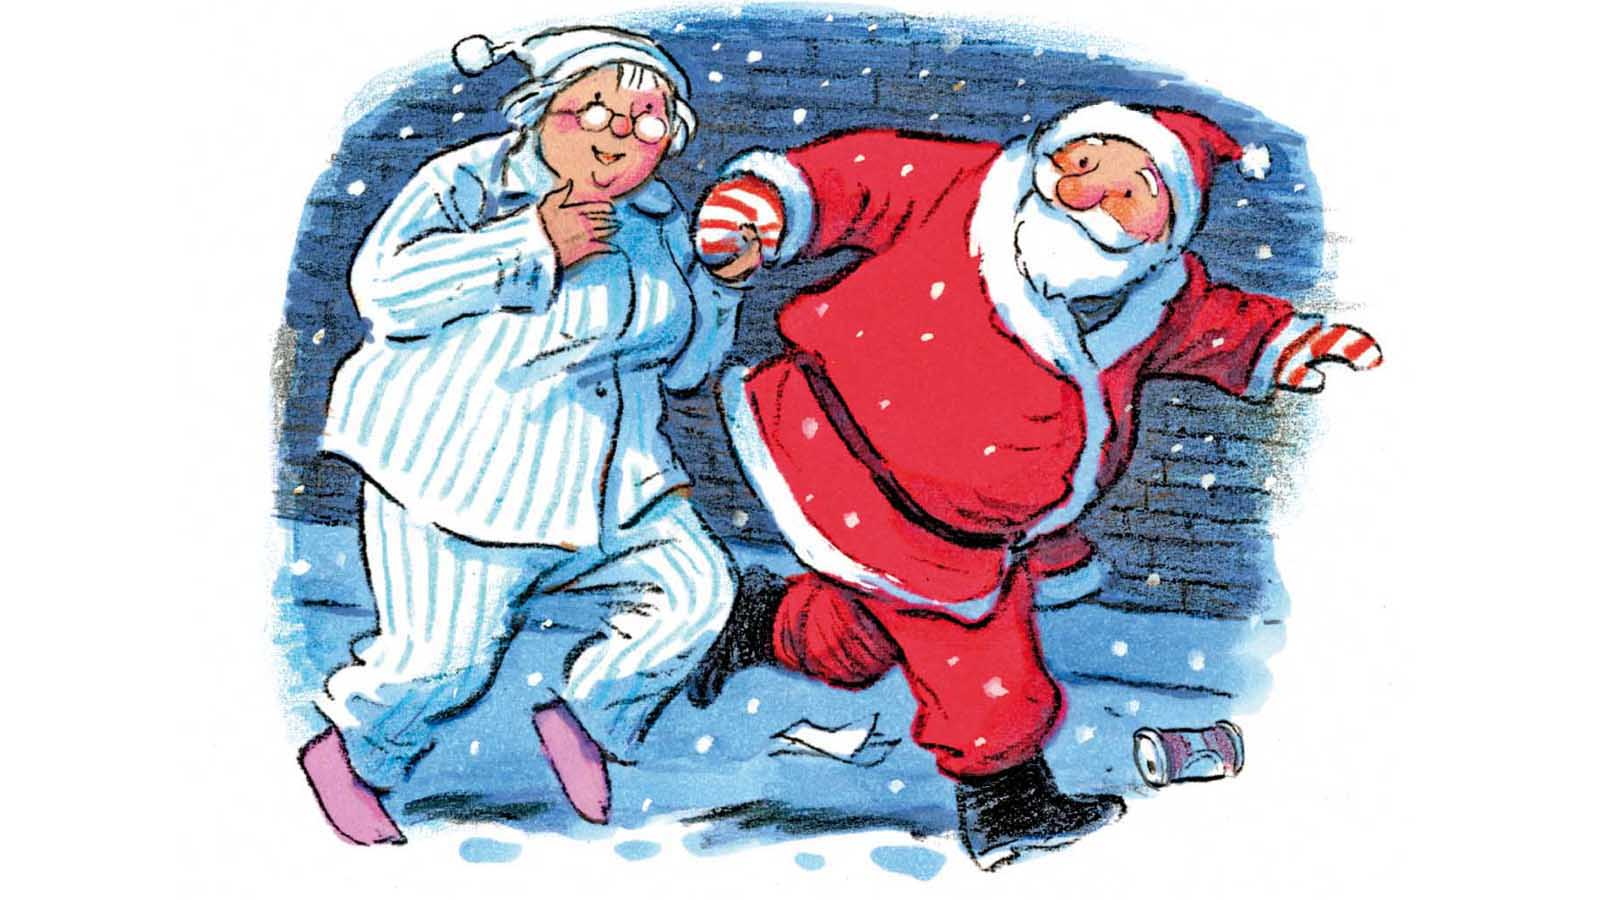 Illustration of Mrs Scrooge in her pajamas sneaking out with Father Christmas in the snow. Taken from Carol Ann Duffy's Mrs Scrooge.